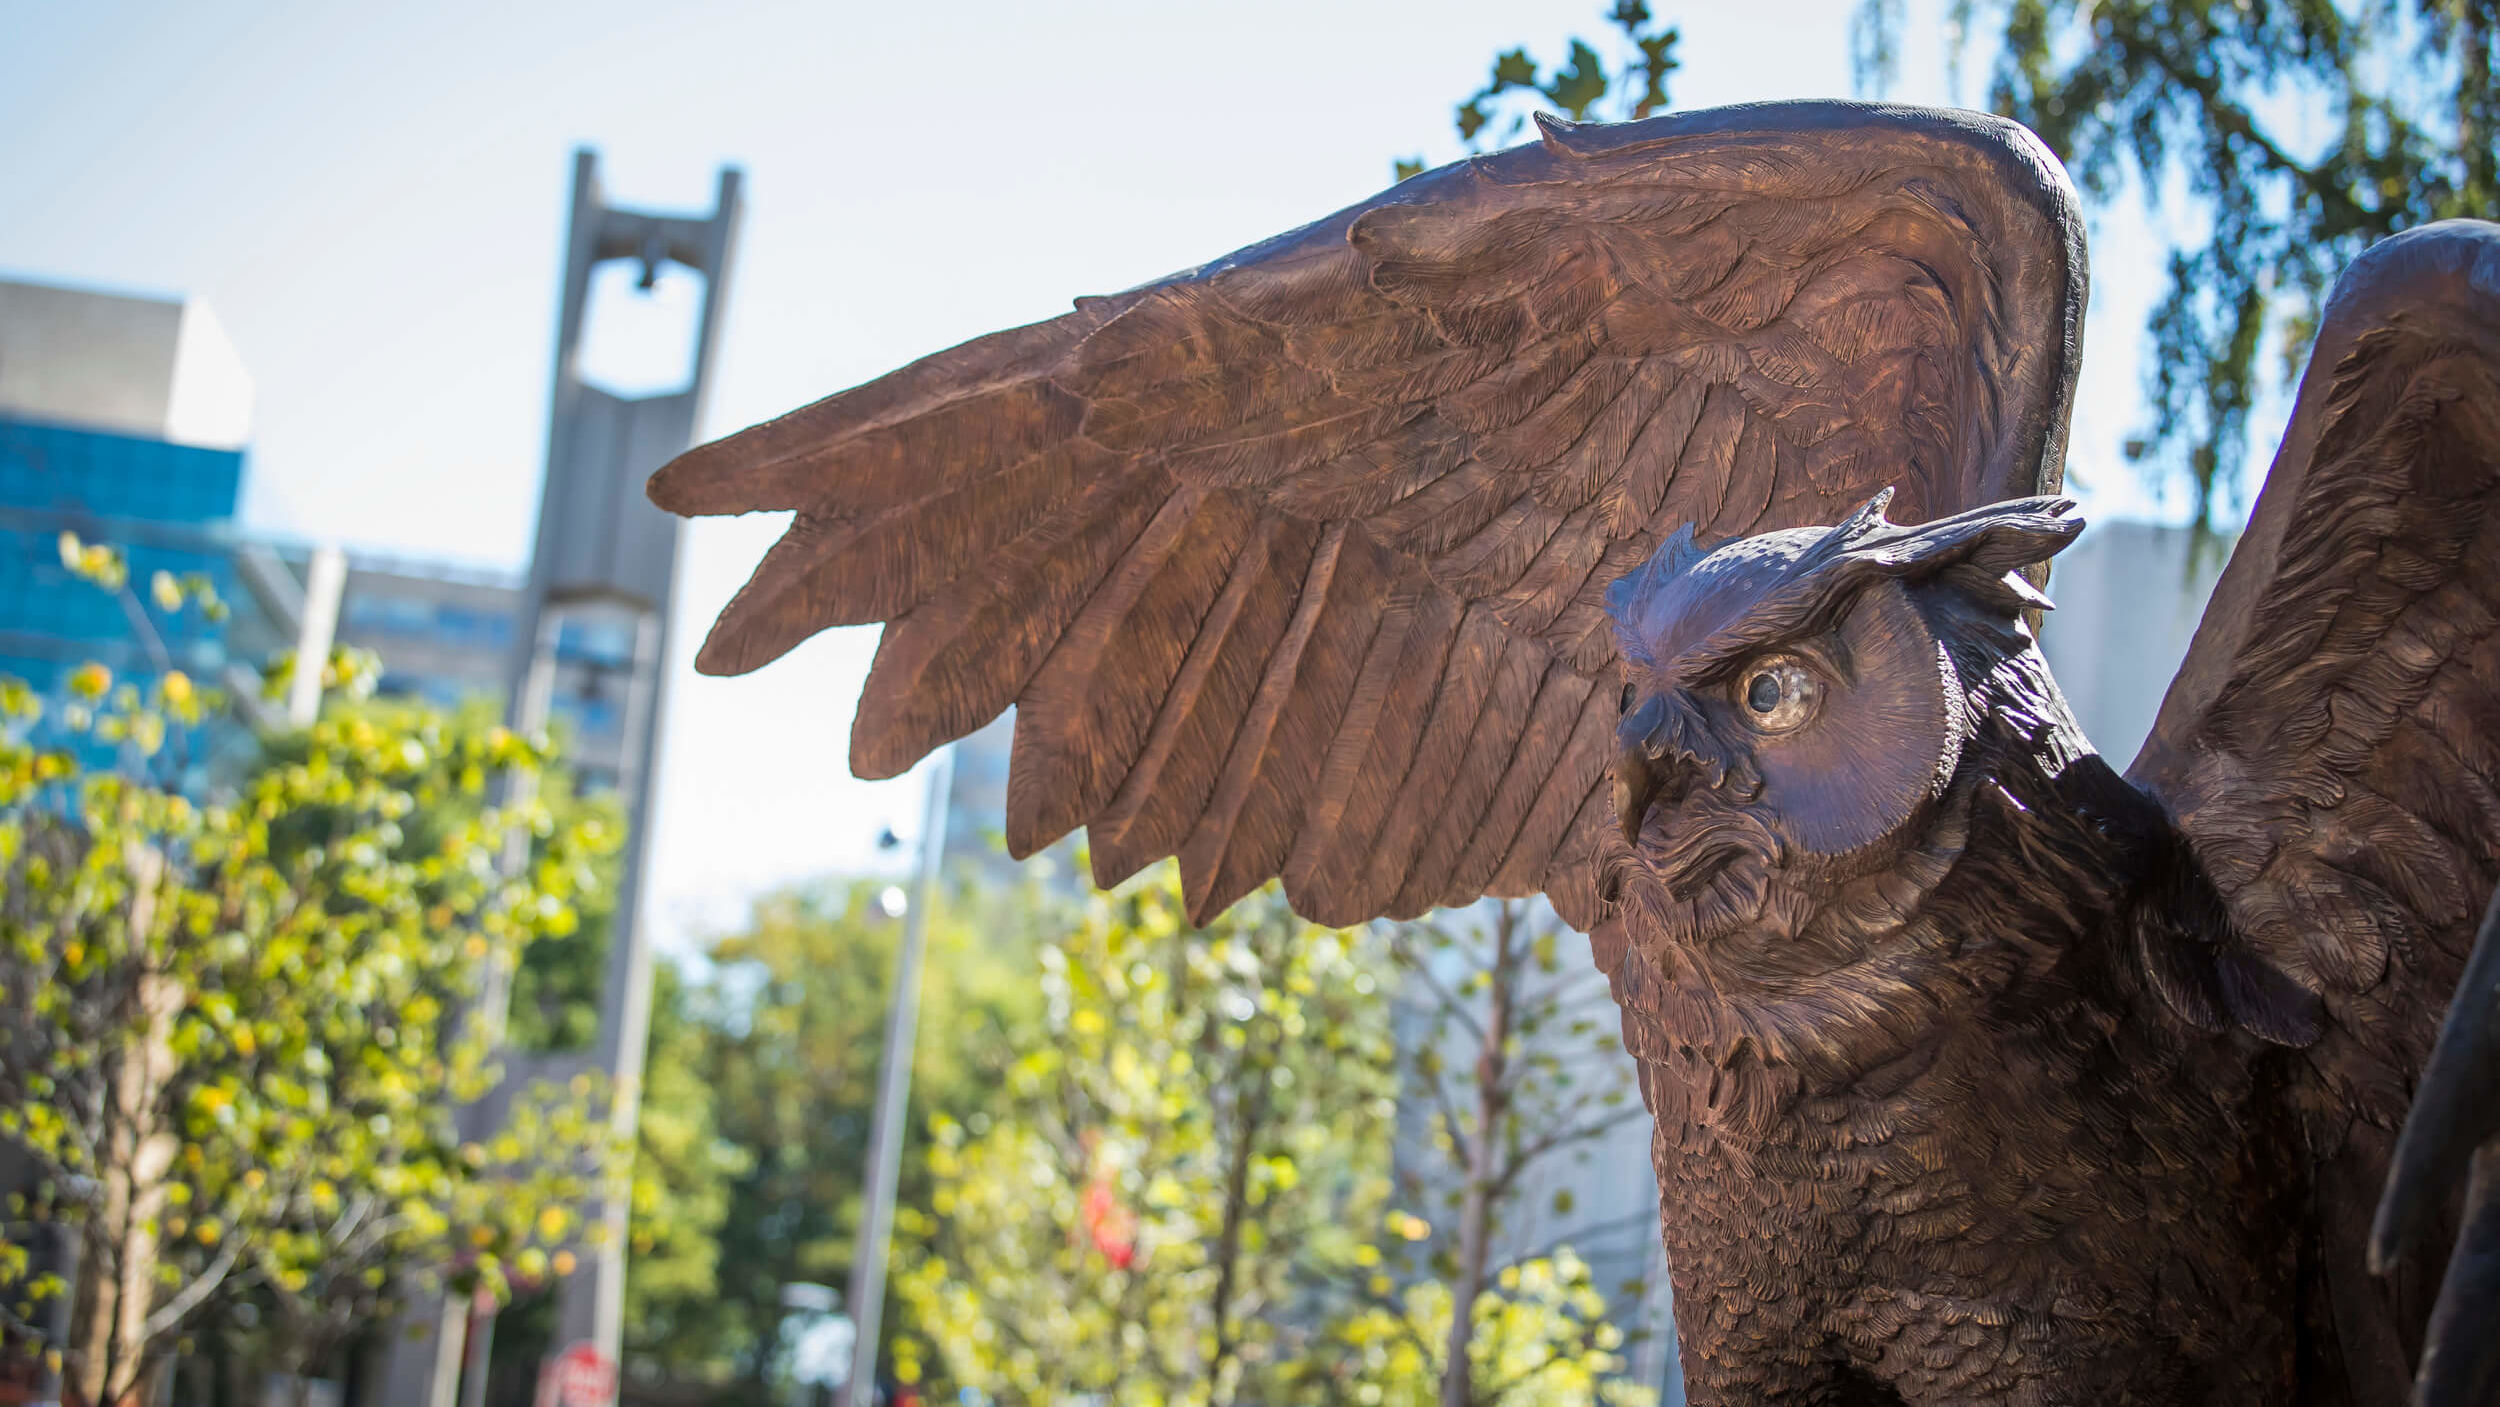 An Owl statue spreads its wings on Temple's Main Campus.